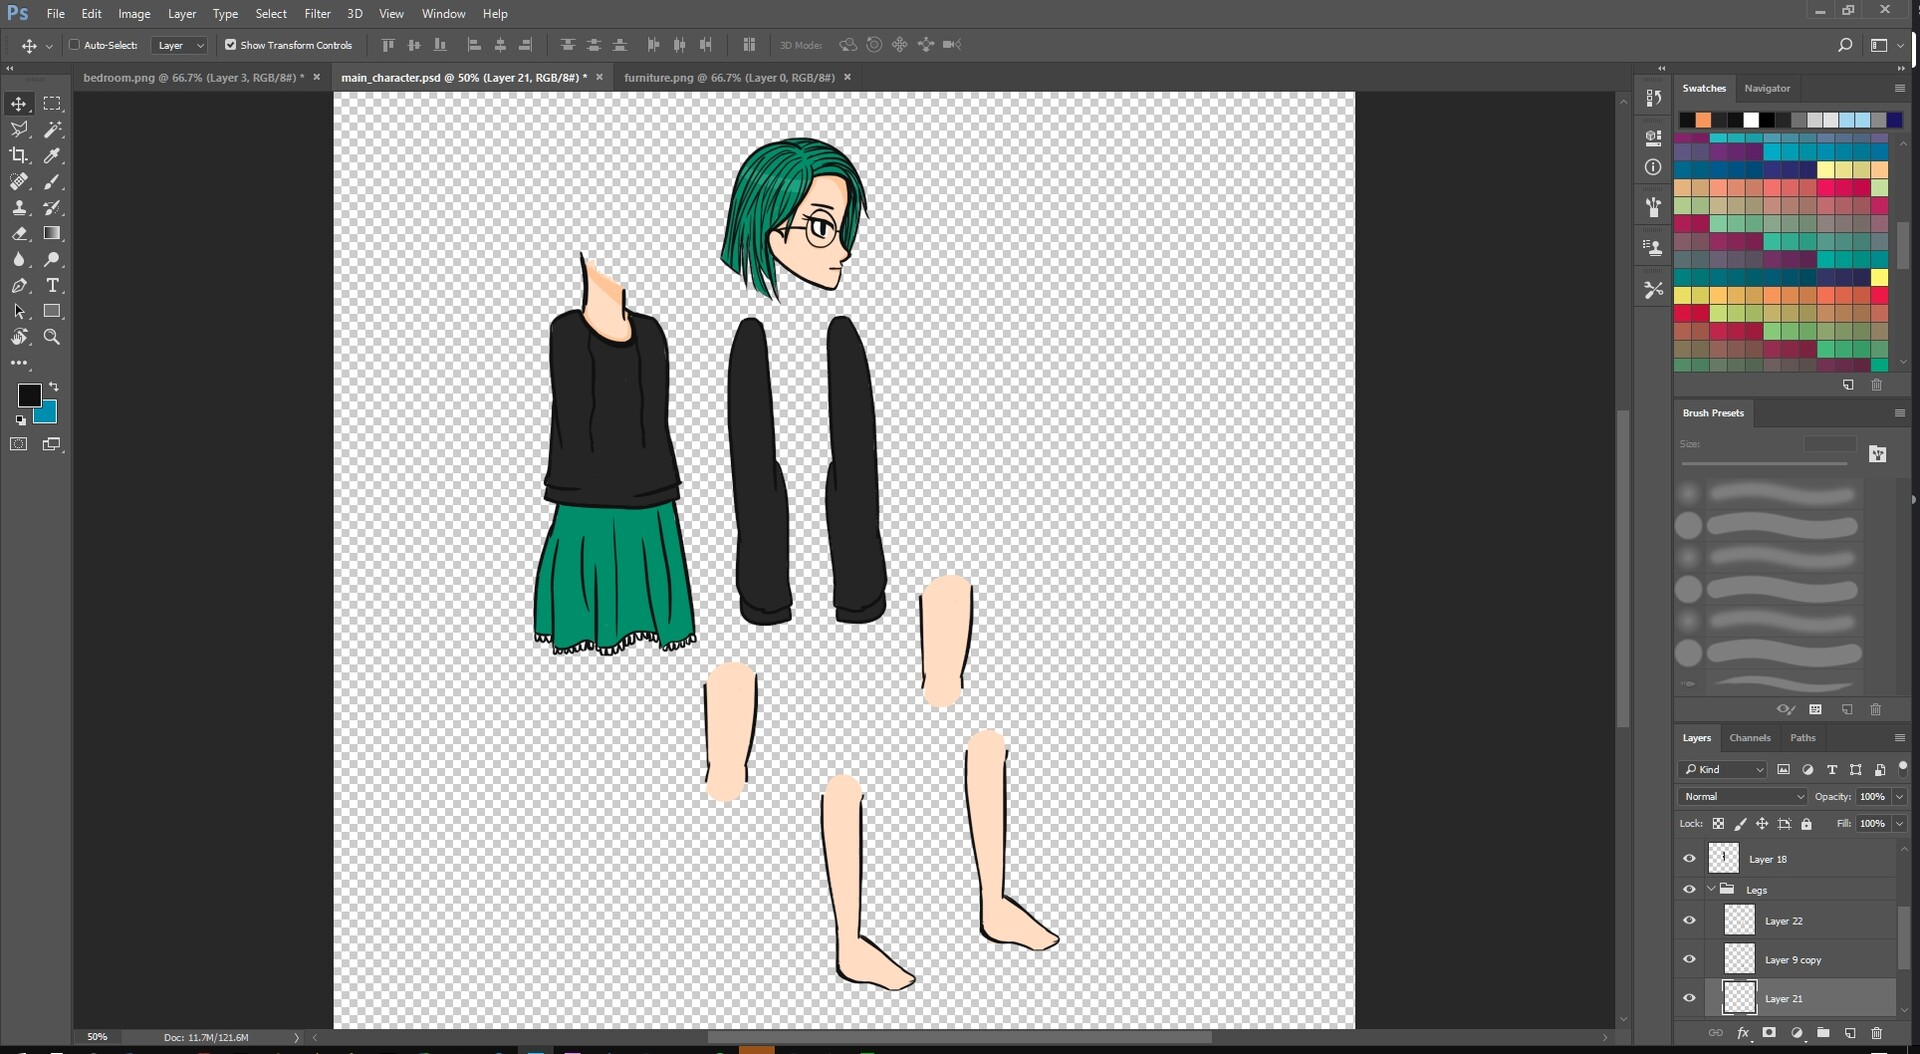 Creating Green and preparing to animate her.